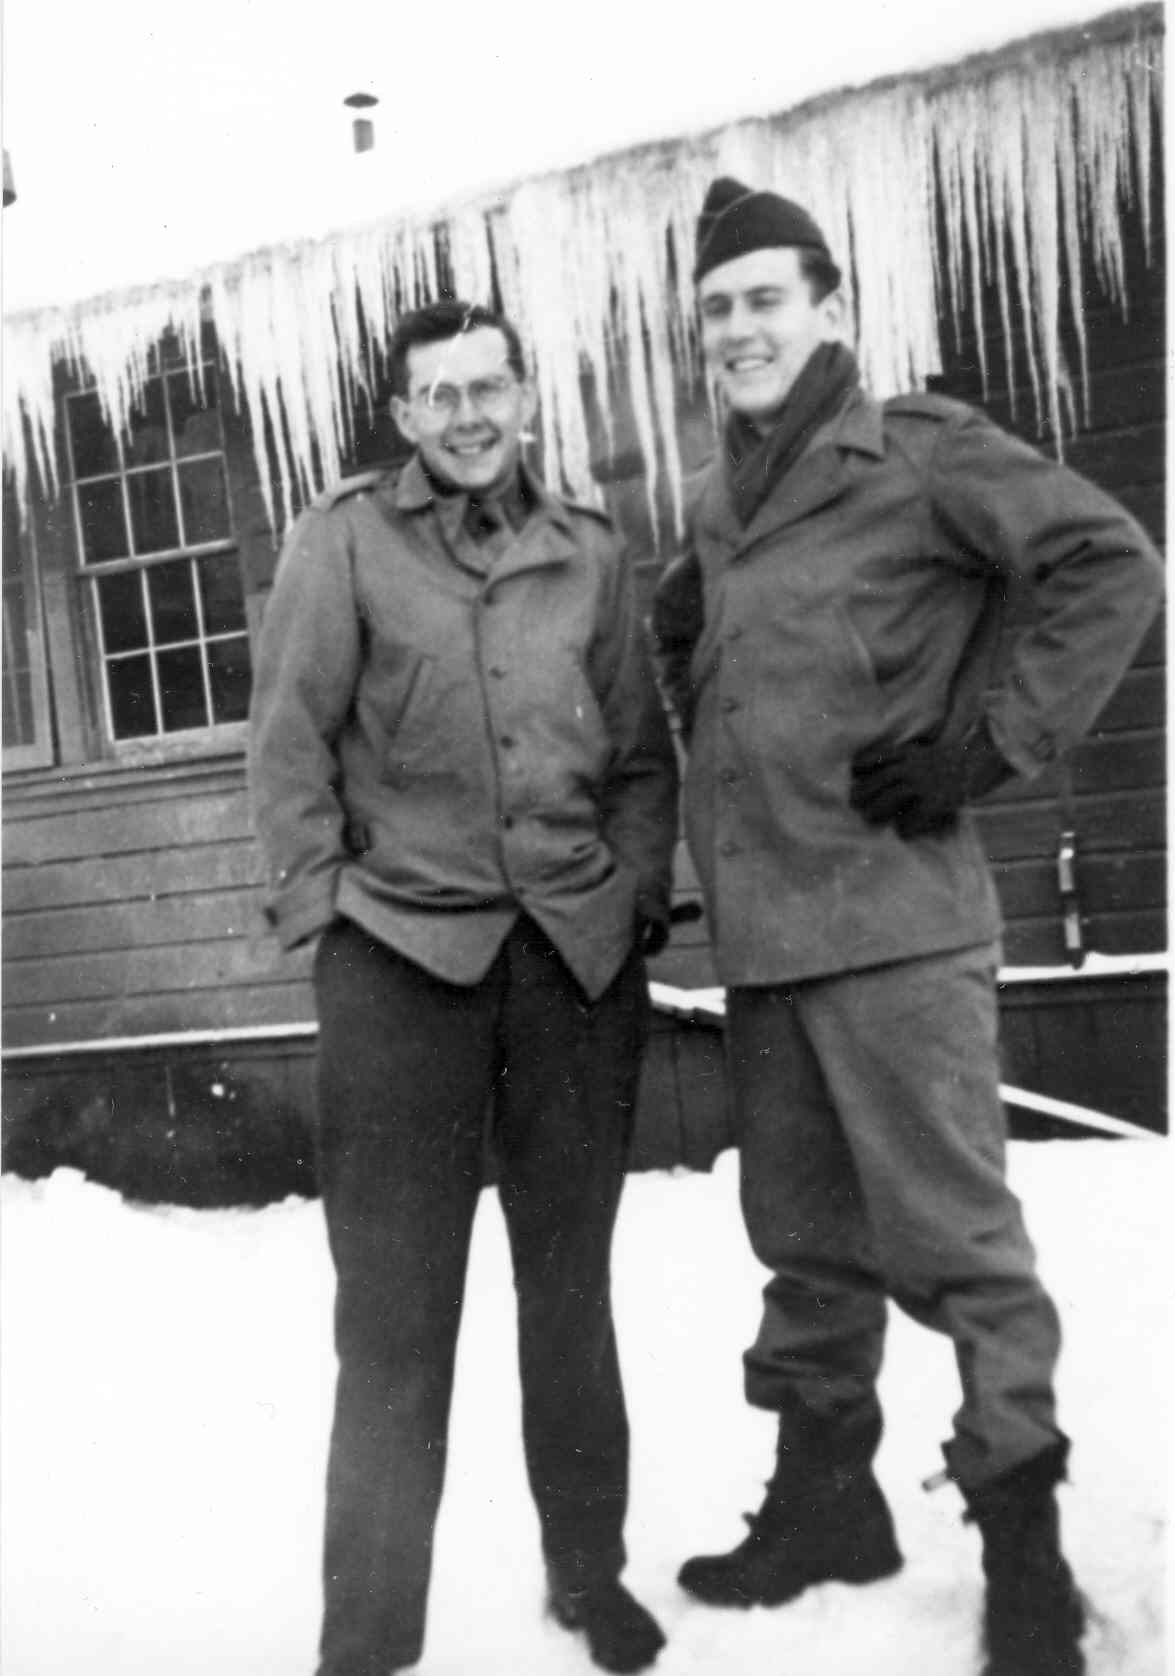 Irving Howe (left) in Alaska, early 1940s.